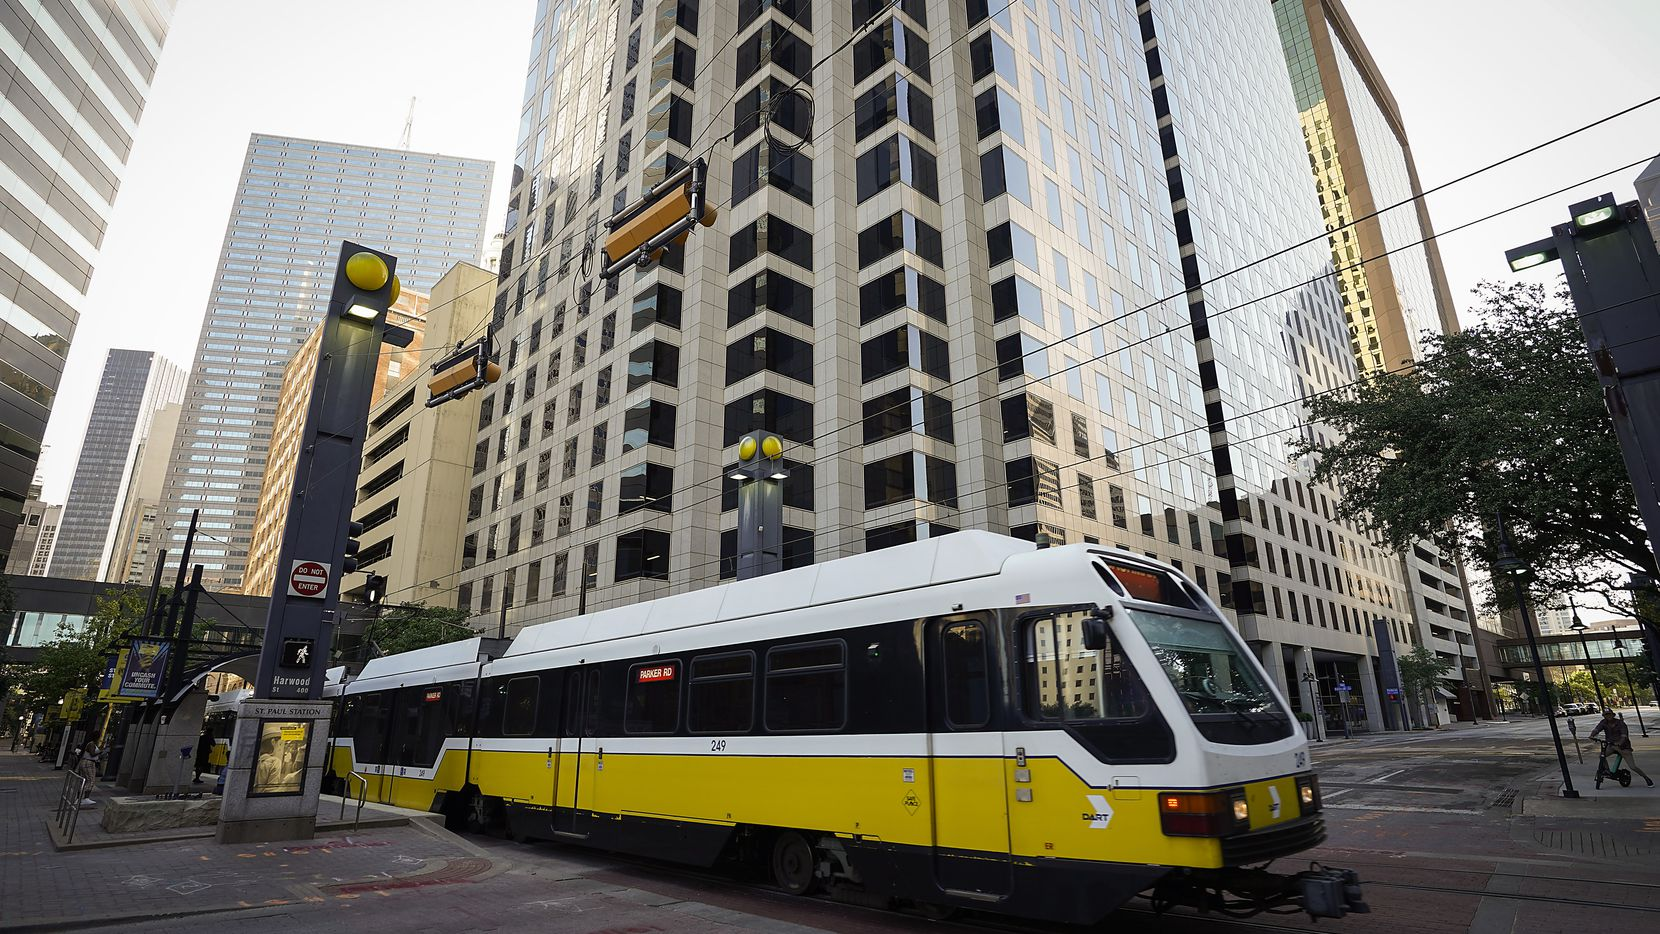 A DART rail train departs St. Paul Station in front of Harwood Center.